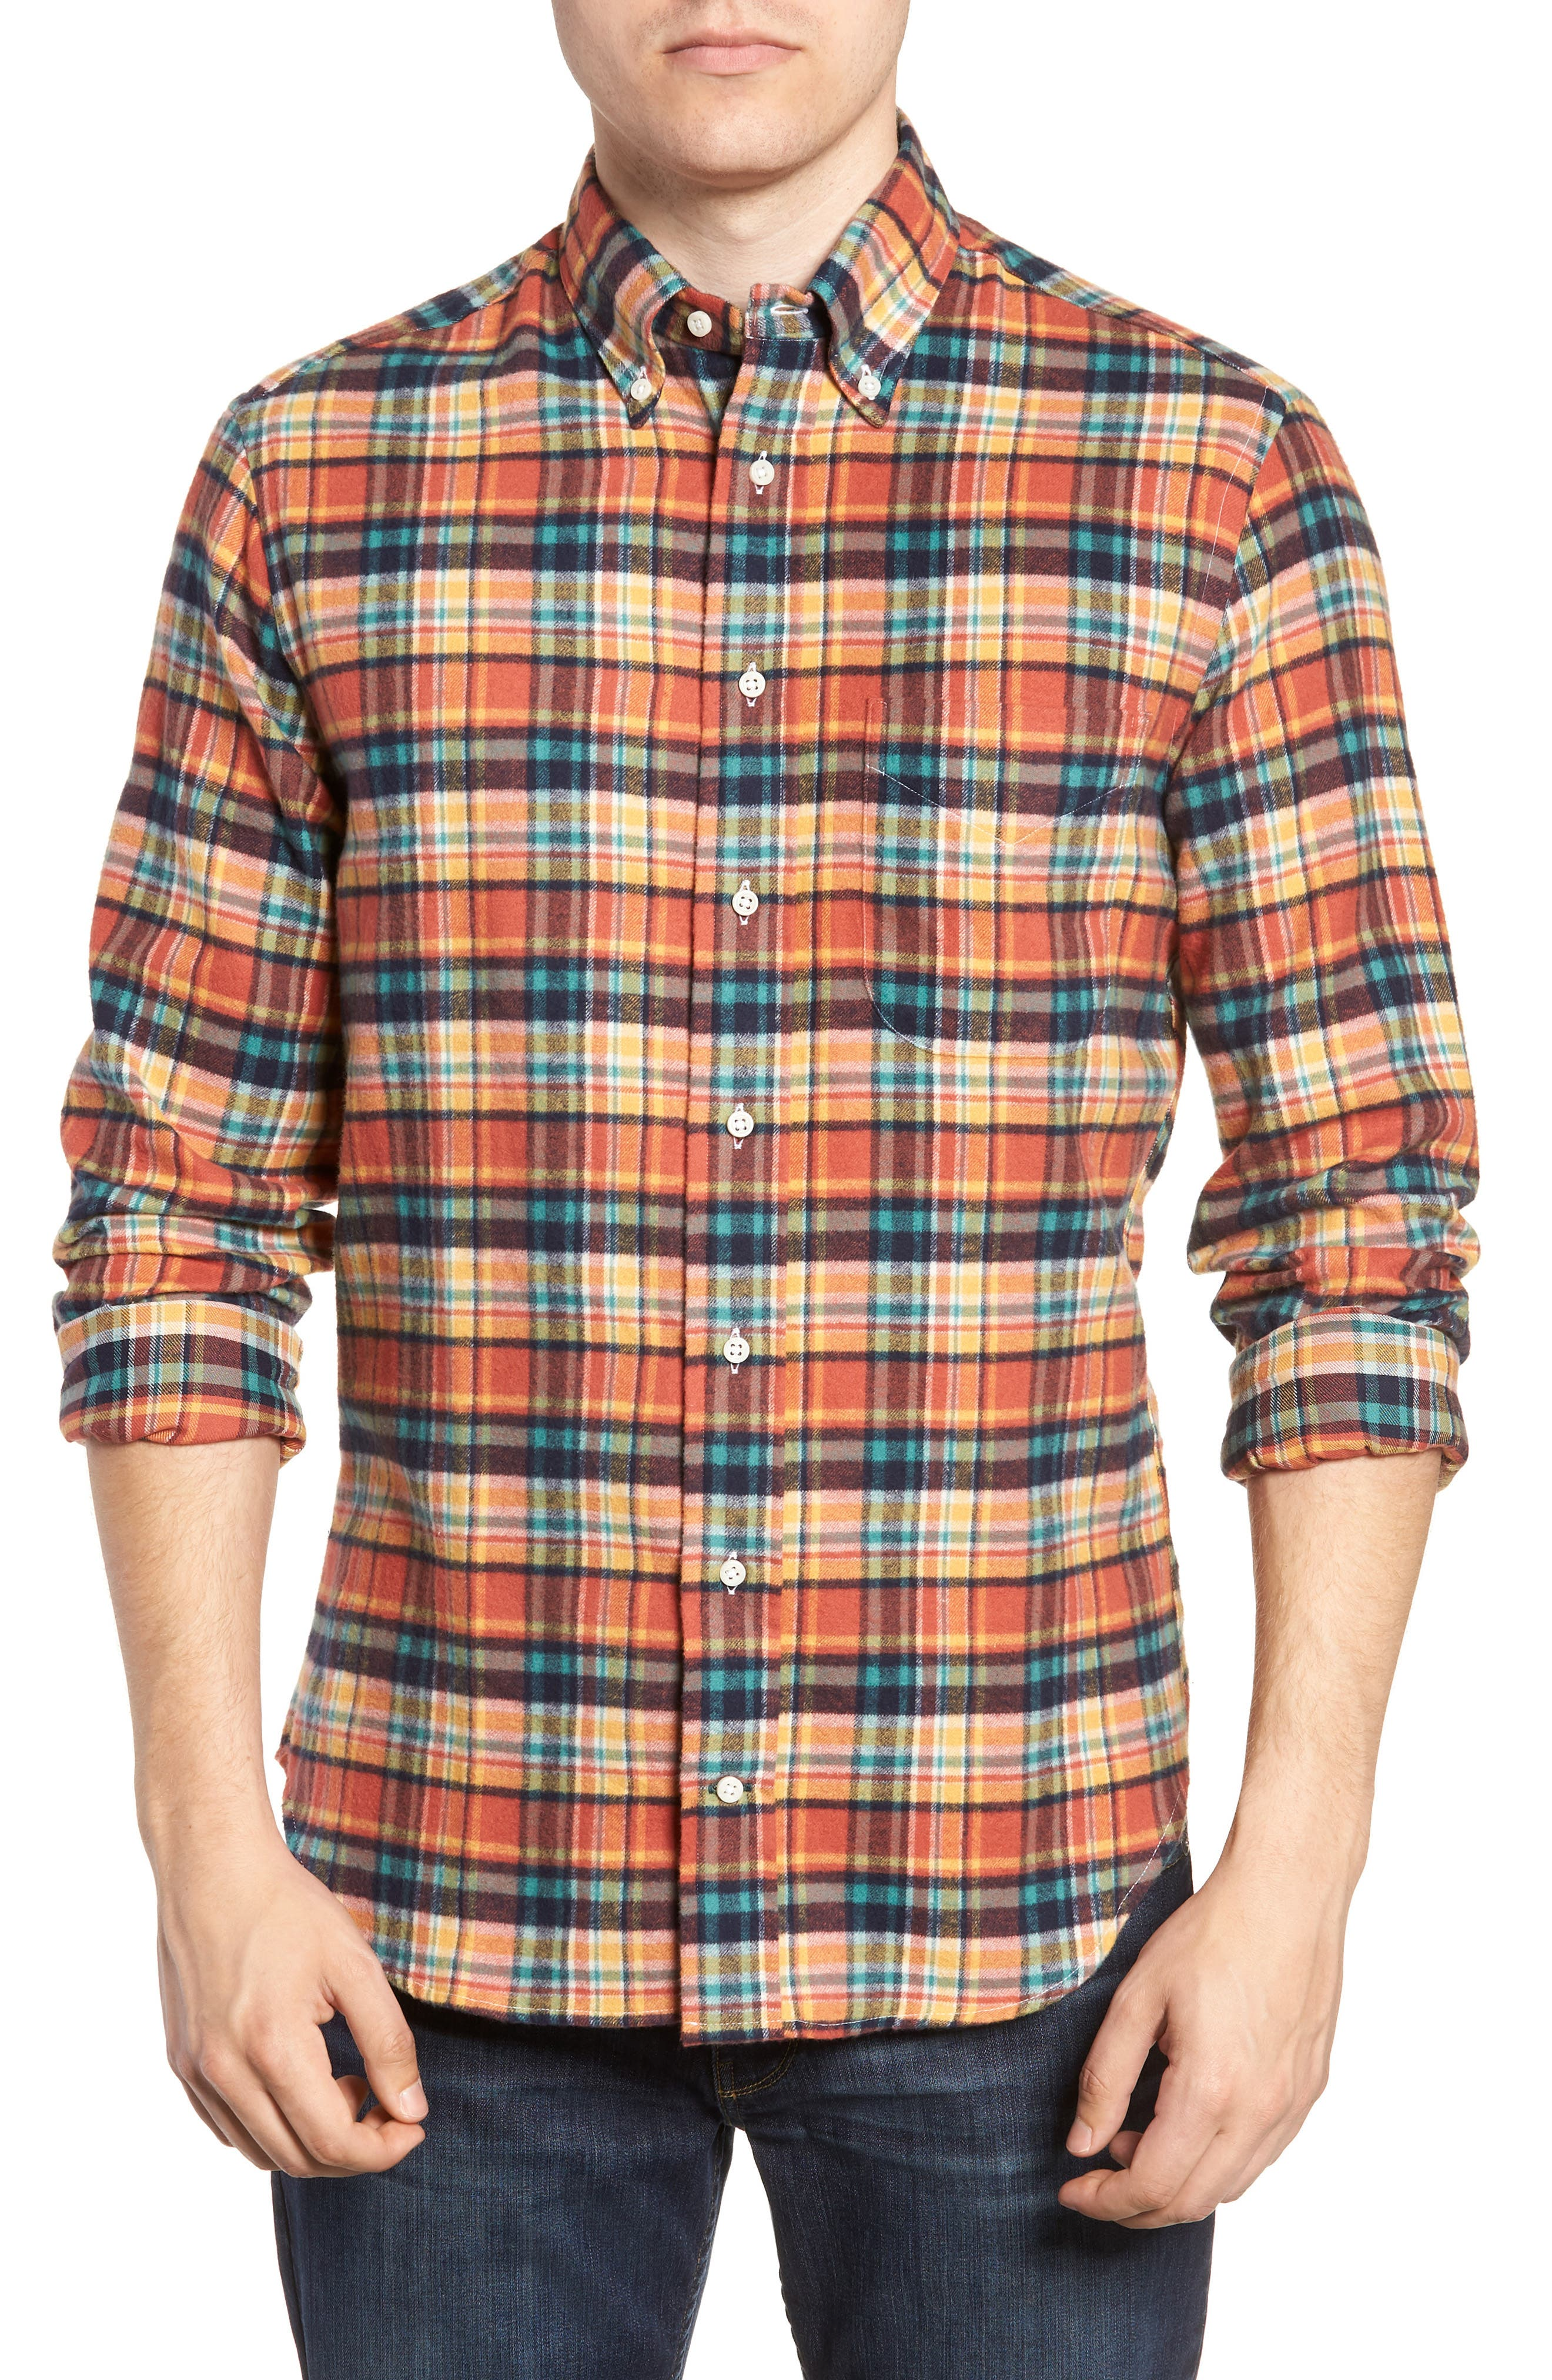 Regular Fit Flannel Shirt,                             Main thumbnail 1, color,                             MULTI